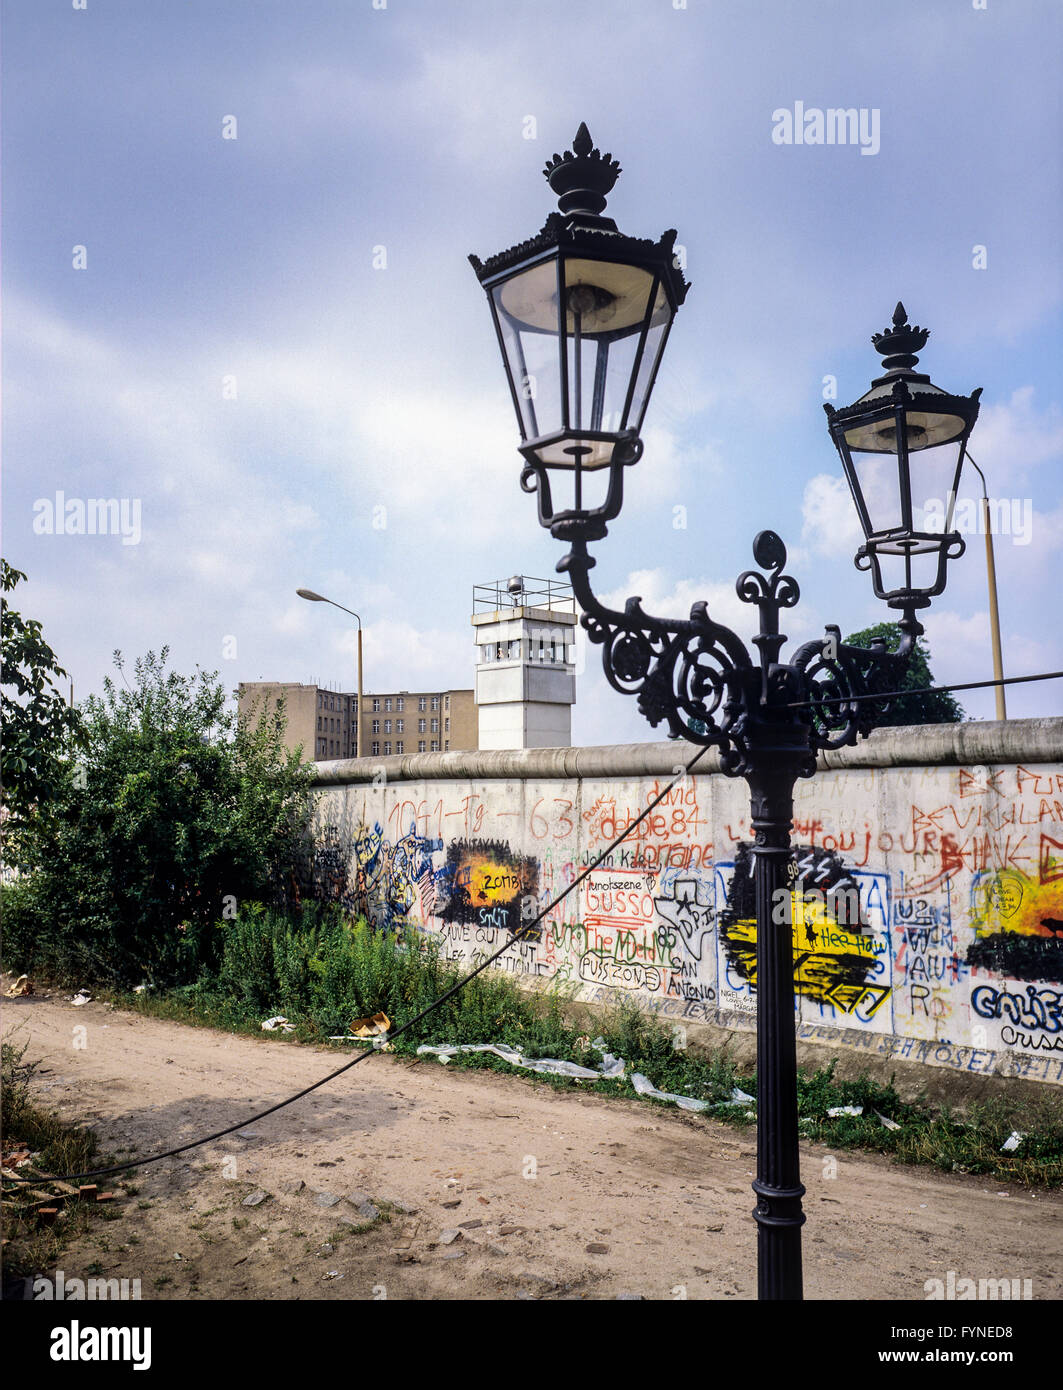 August 1986, Berlin Wall graffitis, street lamp, East Berlin watchtower, Zimmerstrasse street, Kreuzberg, West Berlin - Stock Image